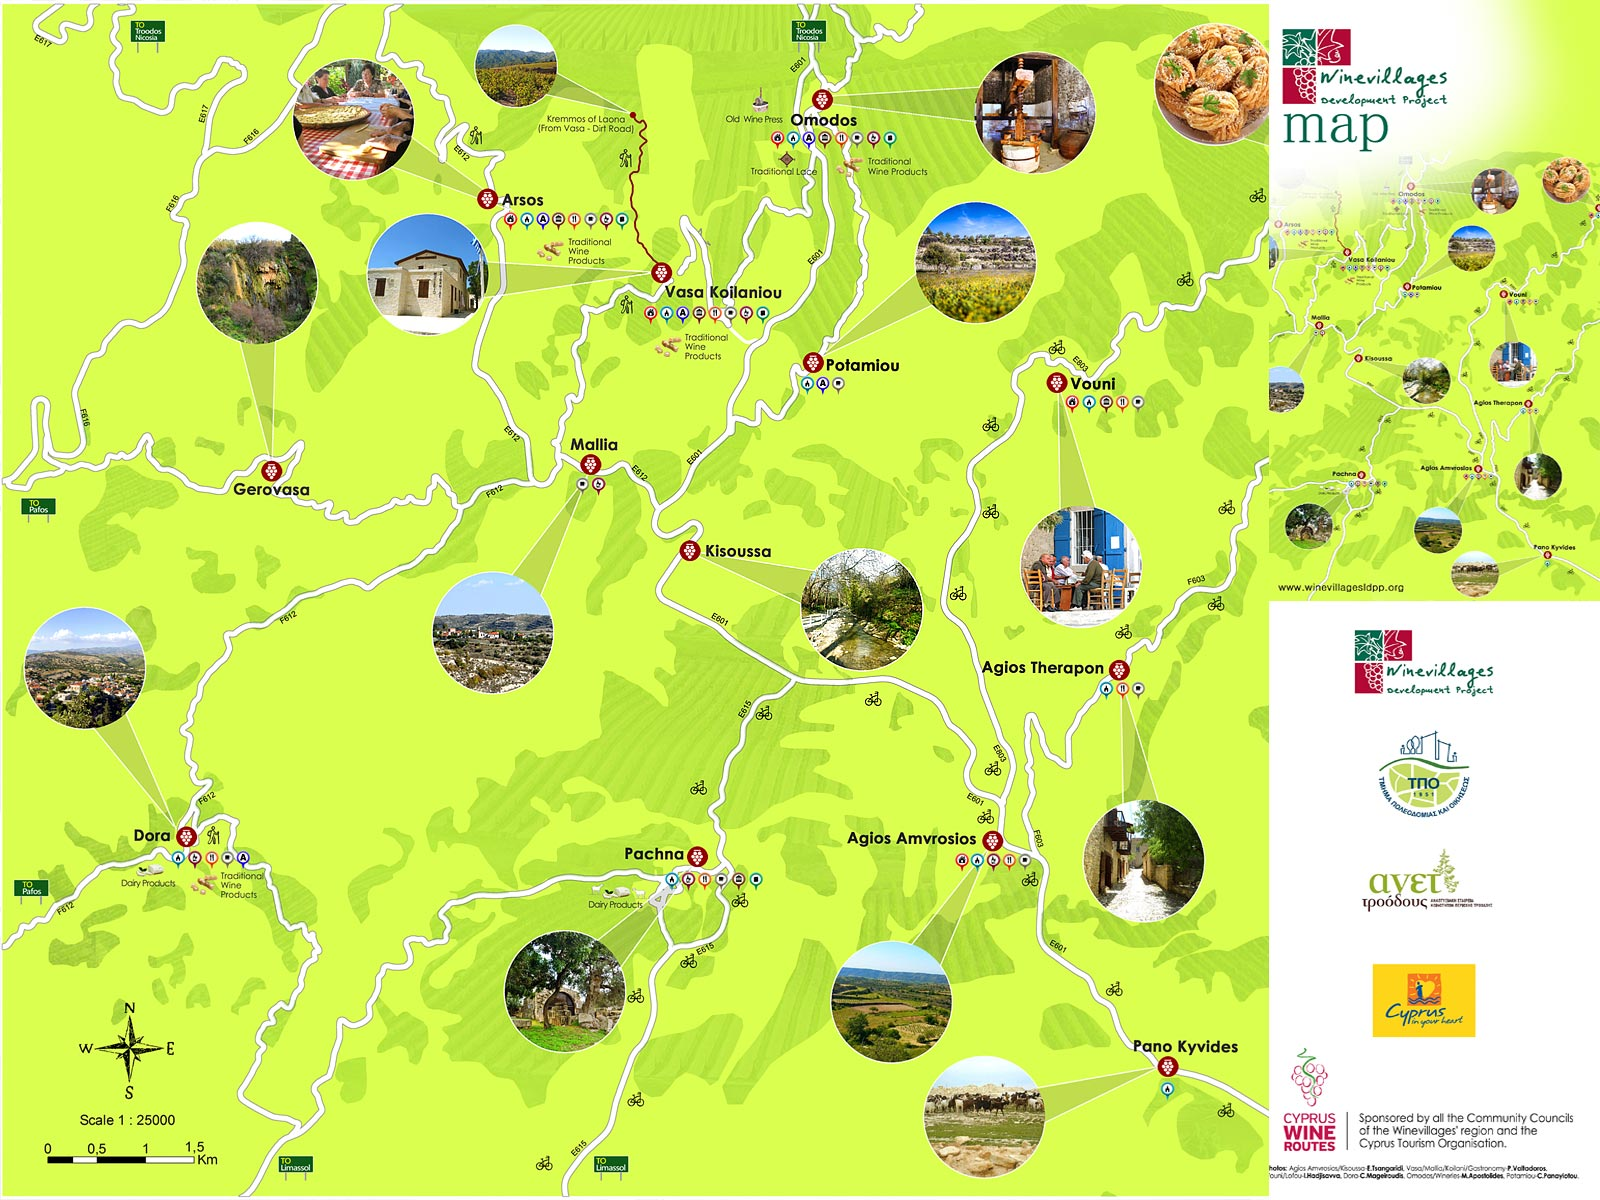 Wine Villages Mappa